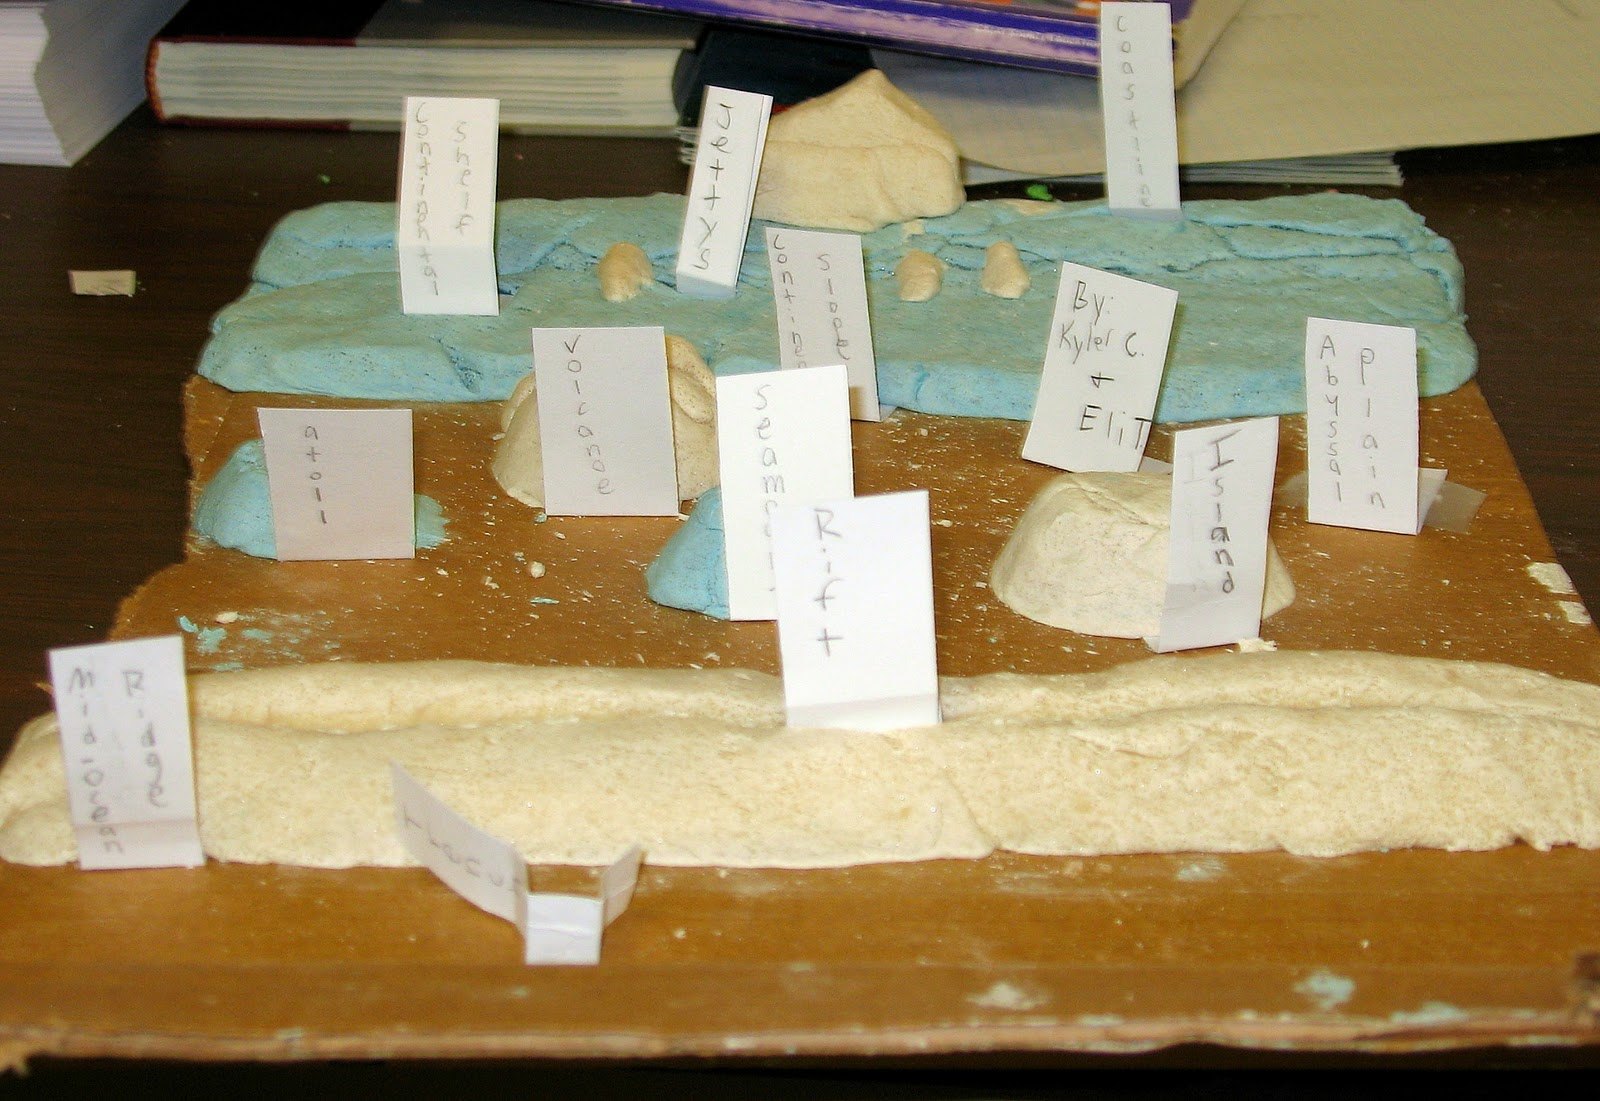 Ocean Floor School Projects Models http://rumseyengineers.blogspot.com/2010/12/ocean-floor.html